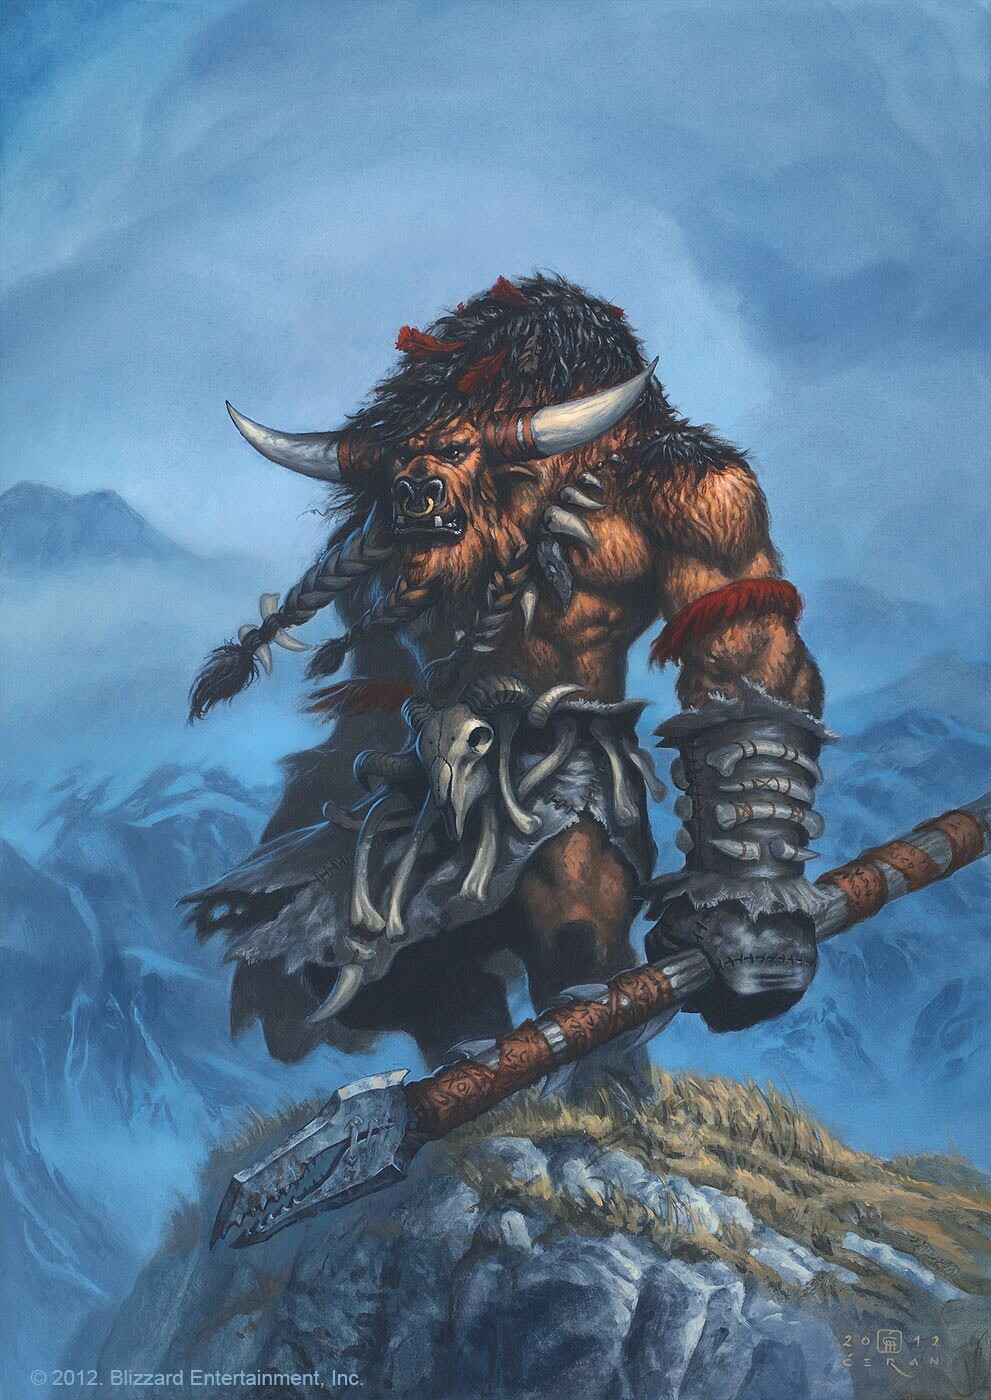 """Huln Highmountain"", Milivoj Ćeran 2012 - 56,5 x 40 cm   - acrylic on paper - © 2012 Blizzard Entertainment - private collection"